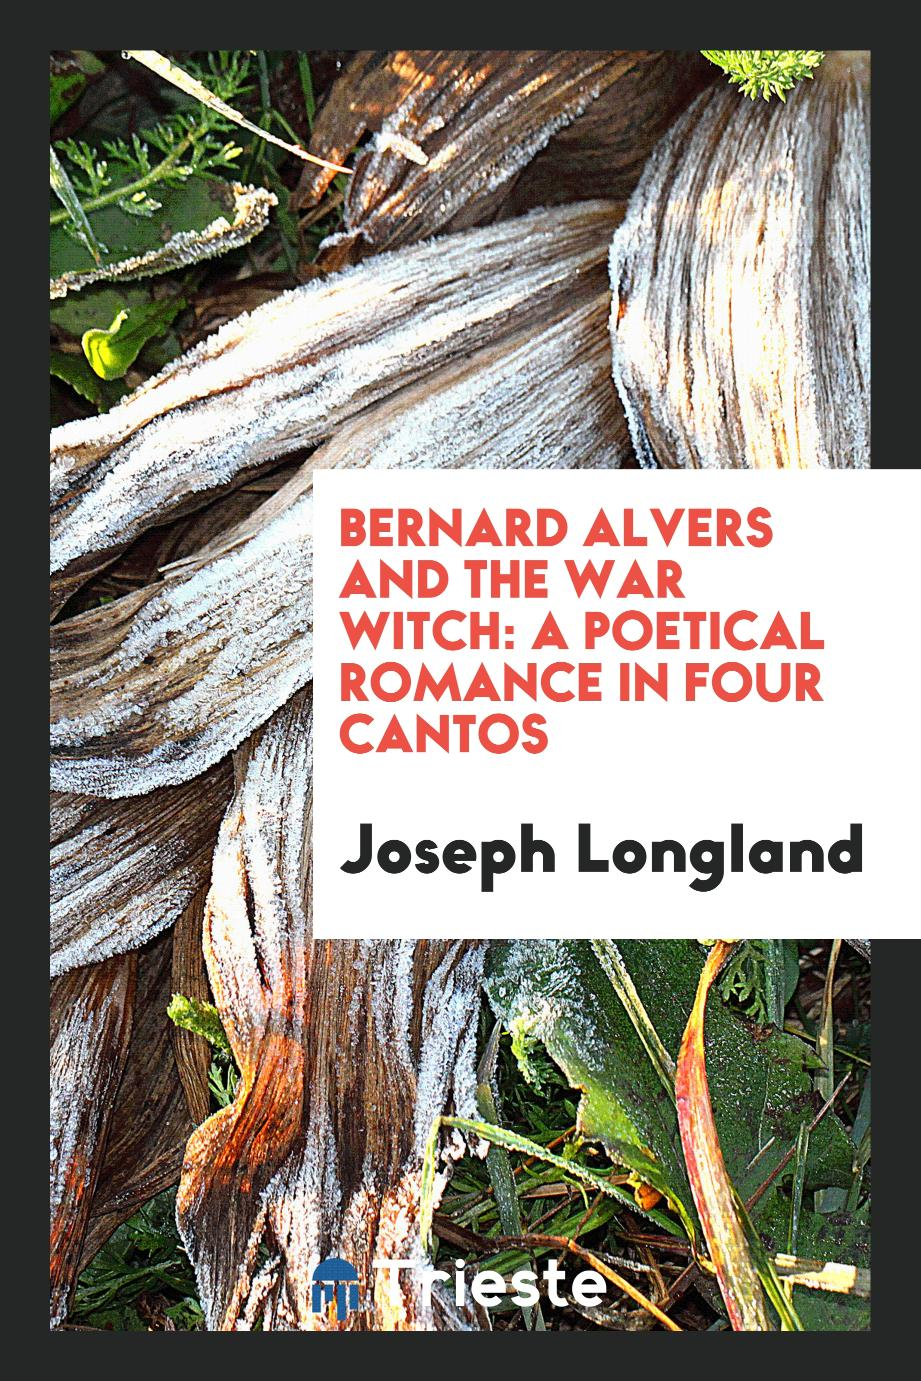 Bernard Alvers and the War Witch: A Poetical Romance in Four Cantos